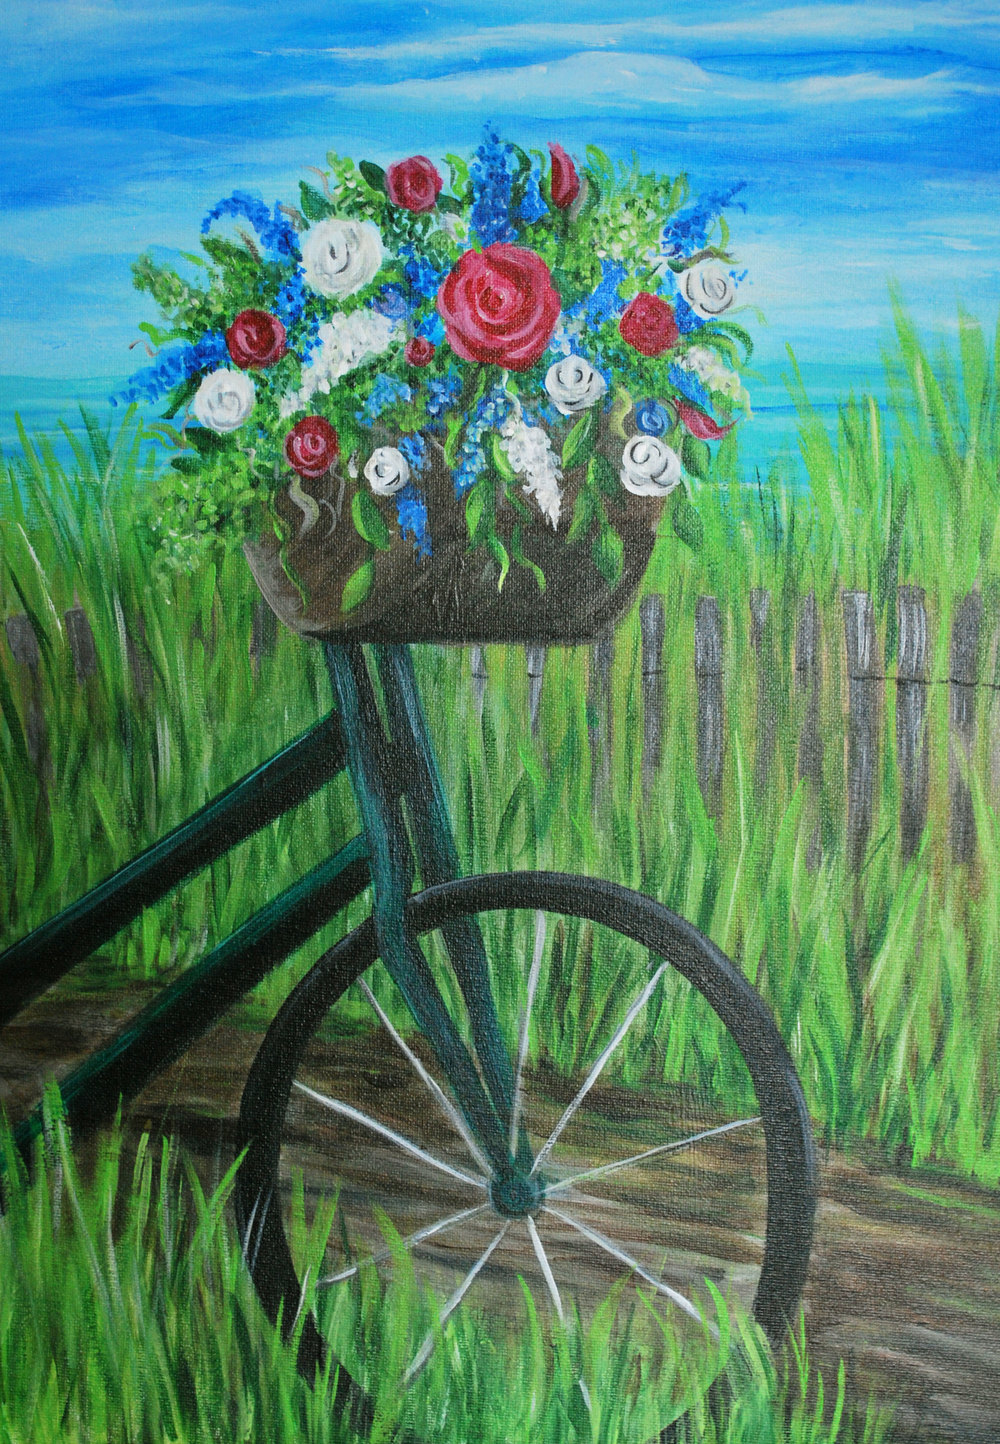 bicycle-with-basket.jpg